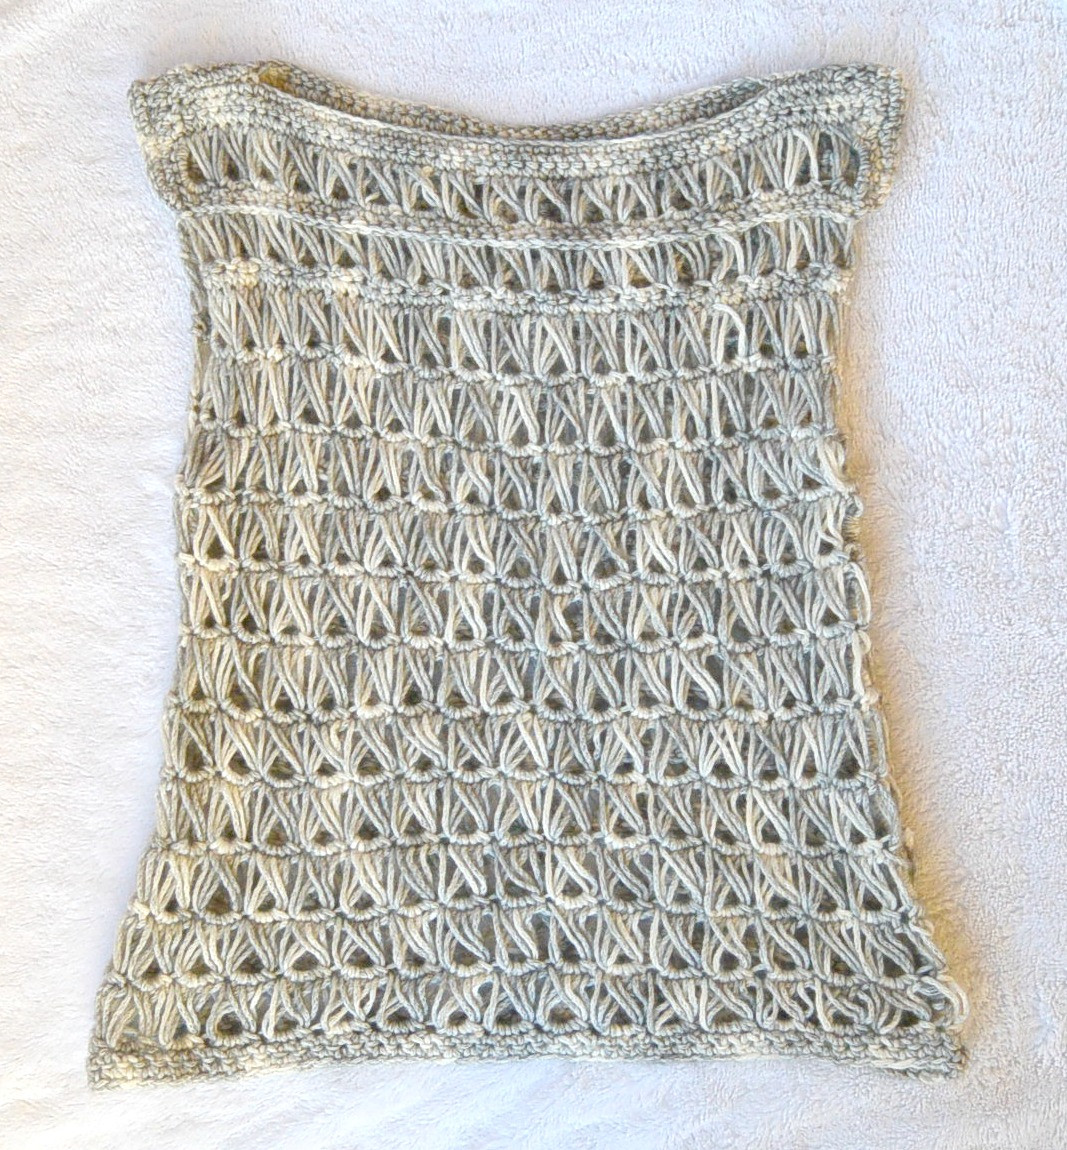 Elegant Broomstick Lace Crochet top – Mama In A Stitch Broomstick Lace Crochet Of Wonderful 49 Ideas Broomstick Lace Crochet